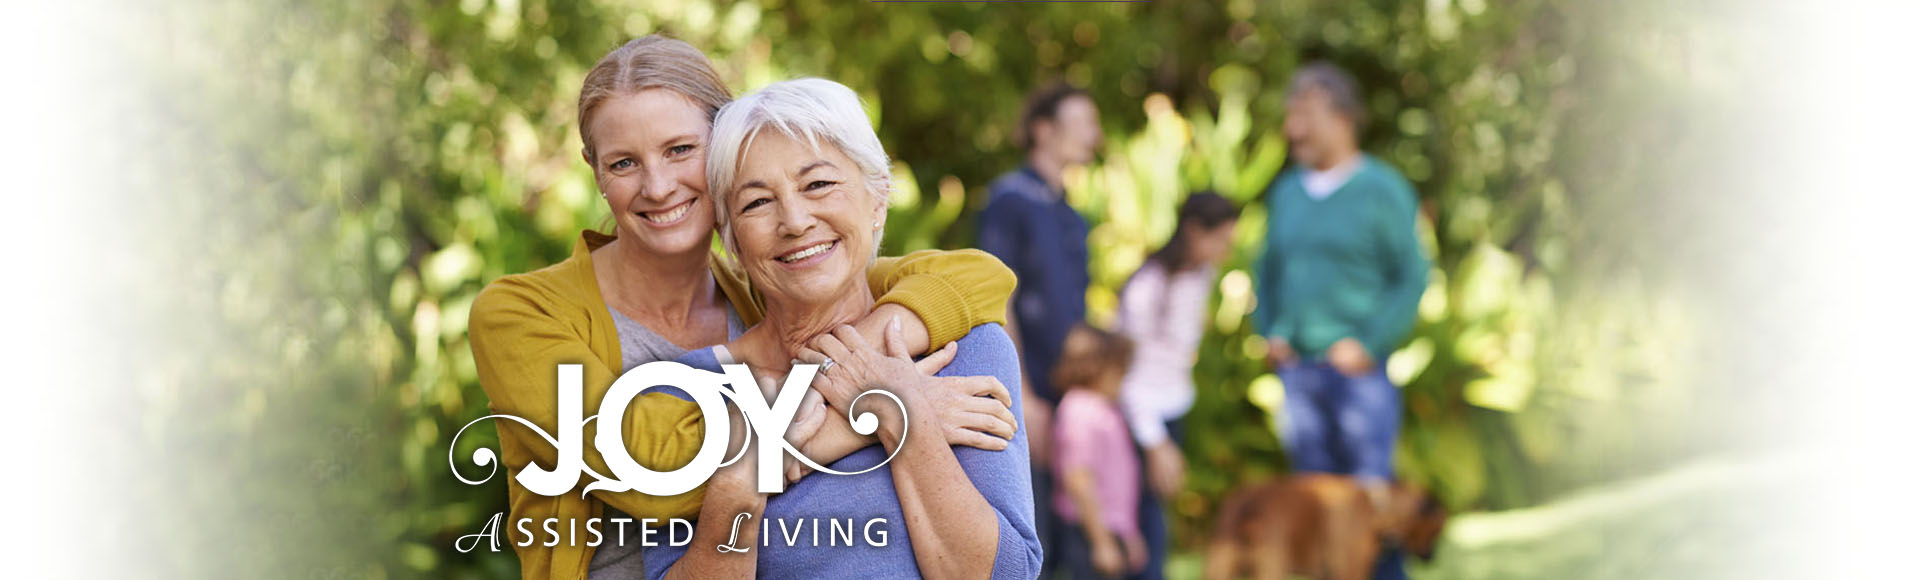 Joy Assisted Living Banner BROCHURE